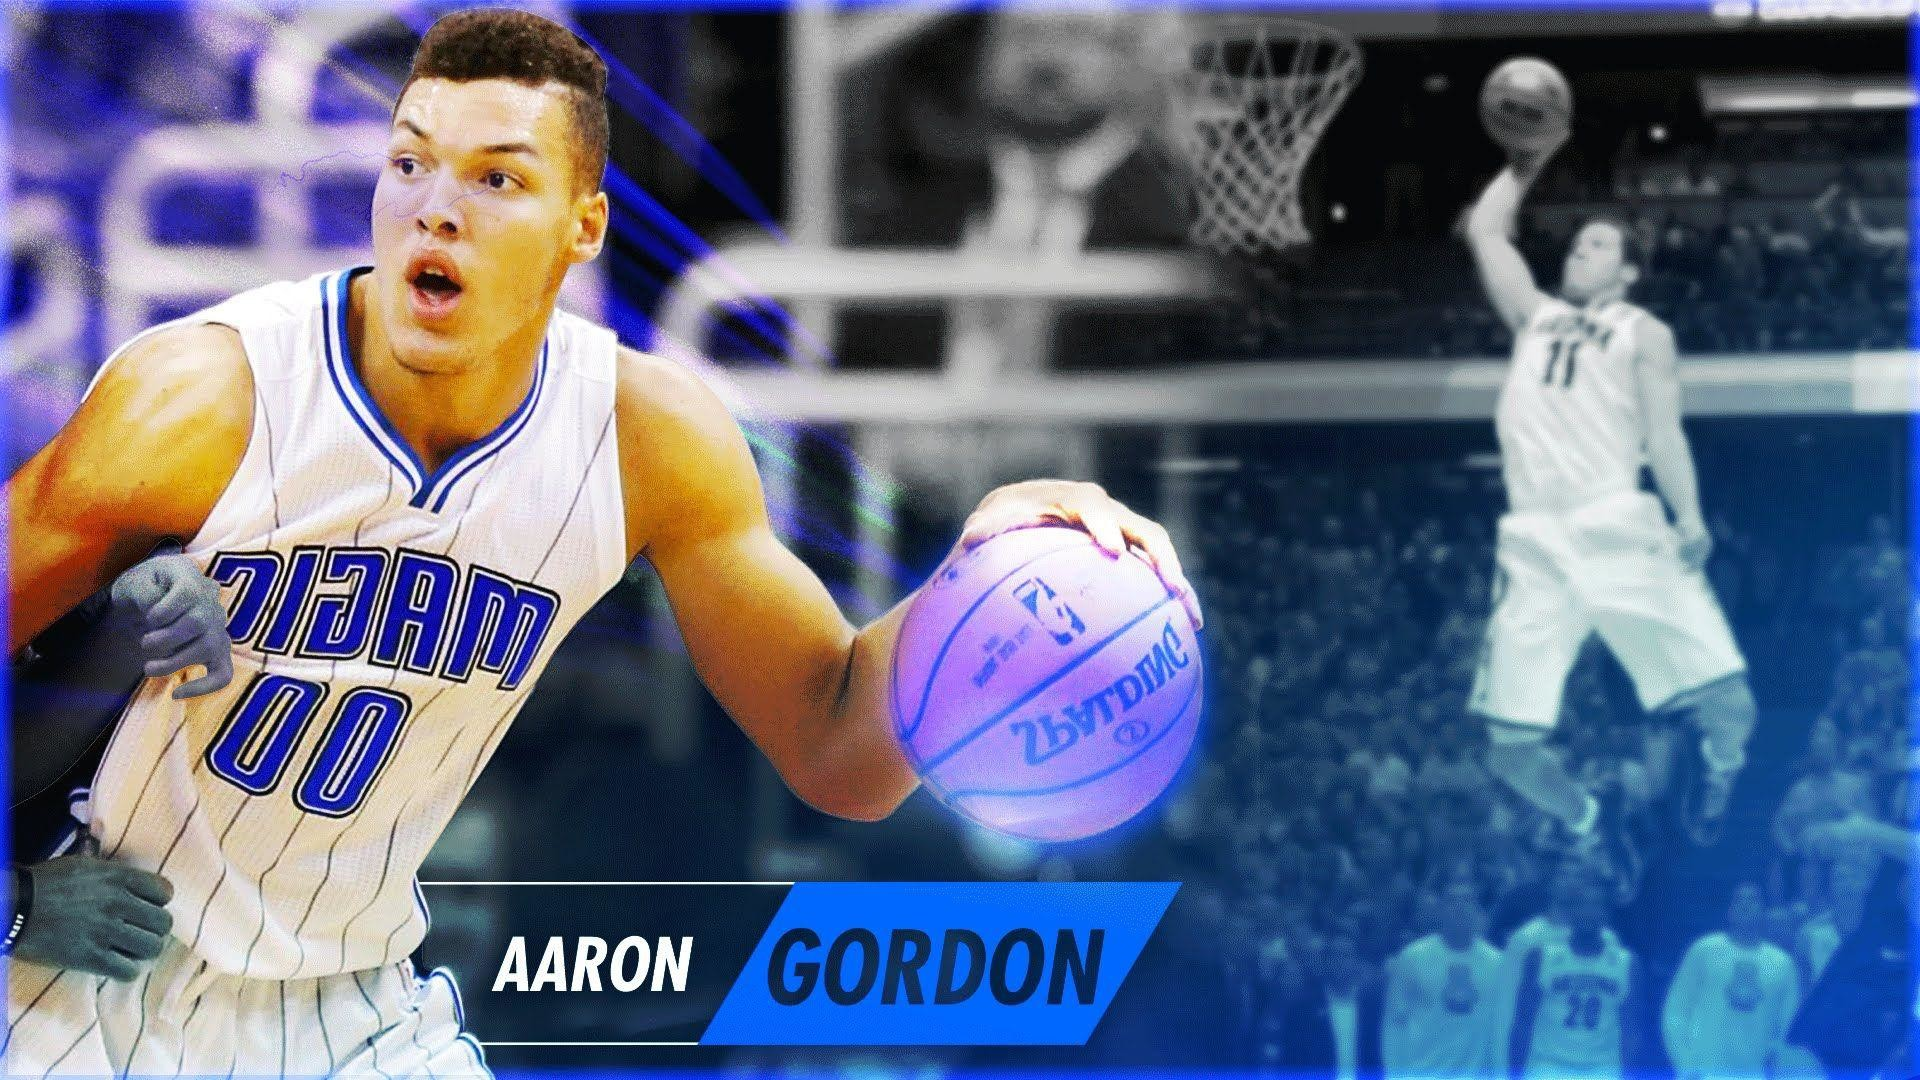 Aaron Gordon Wallpapers 65 images 1920x1080